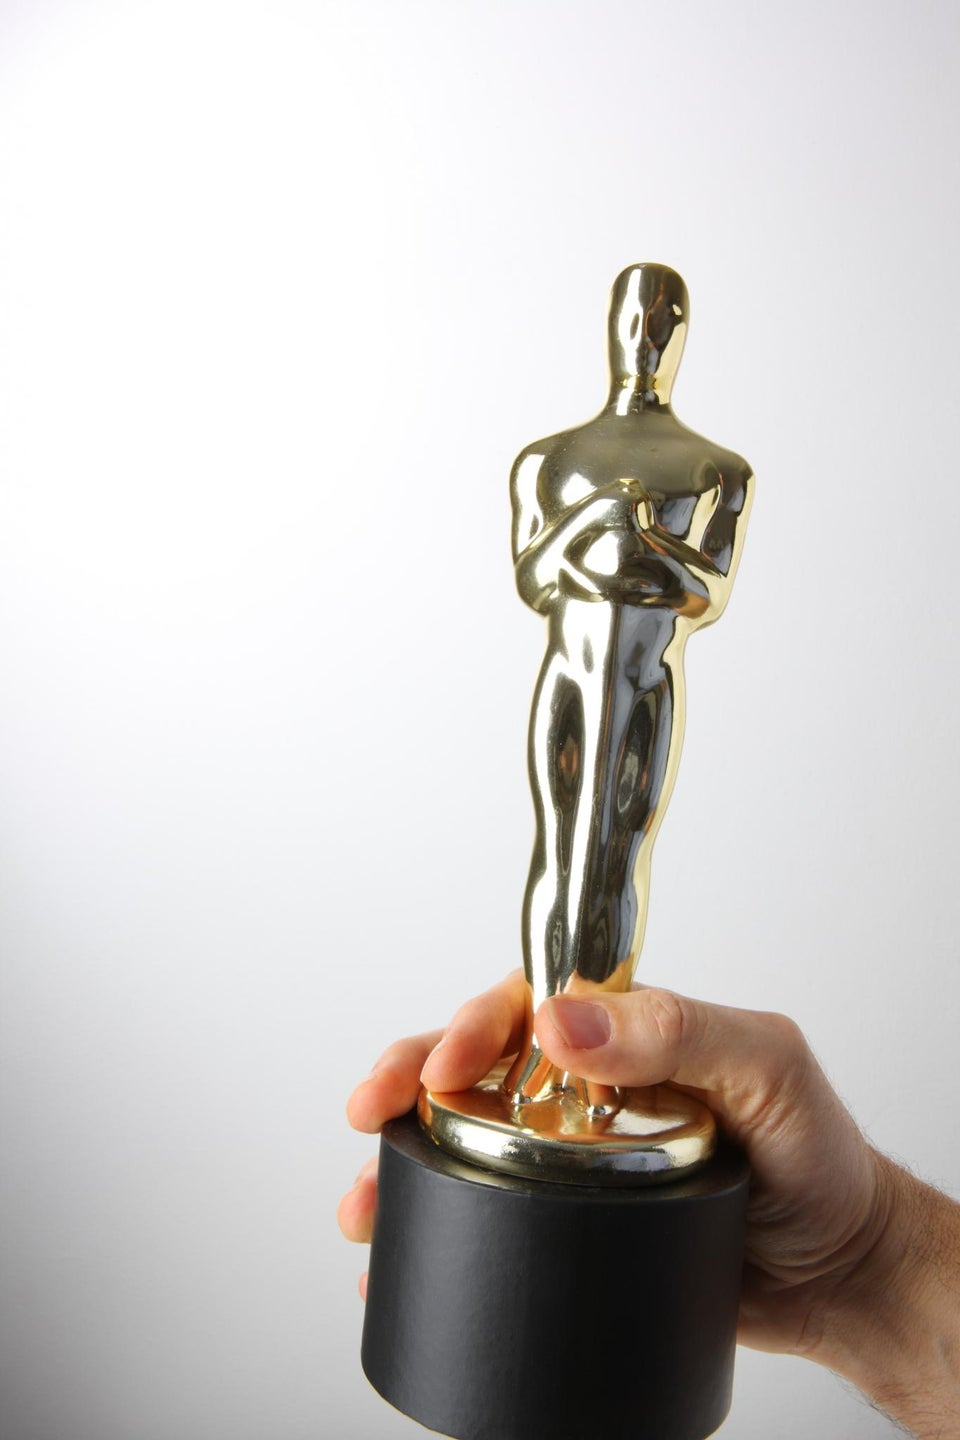 ESSENCE Poll: Will You Be Watching The Oscars This Year?